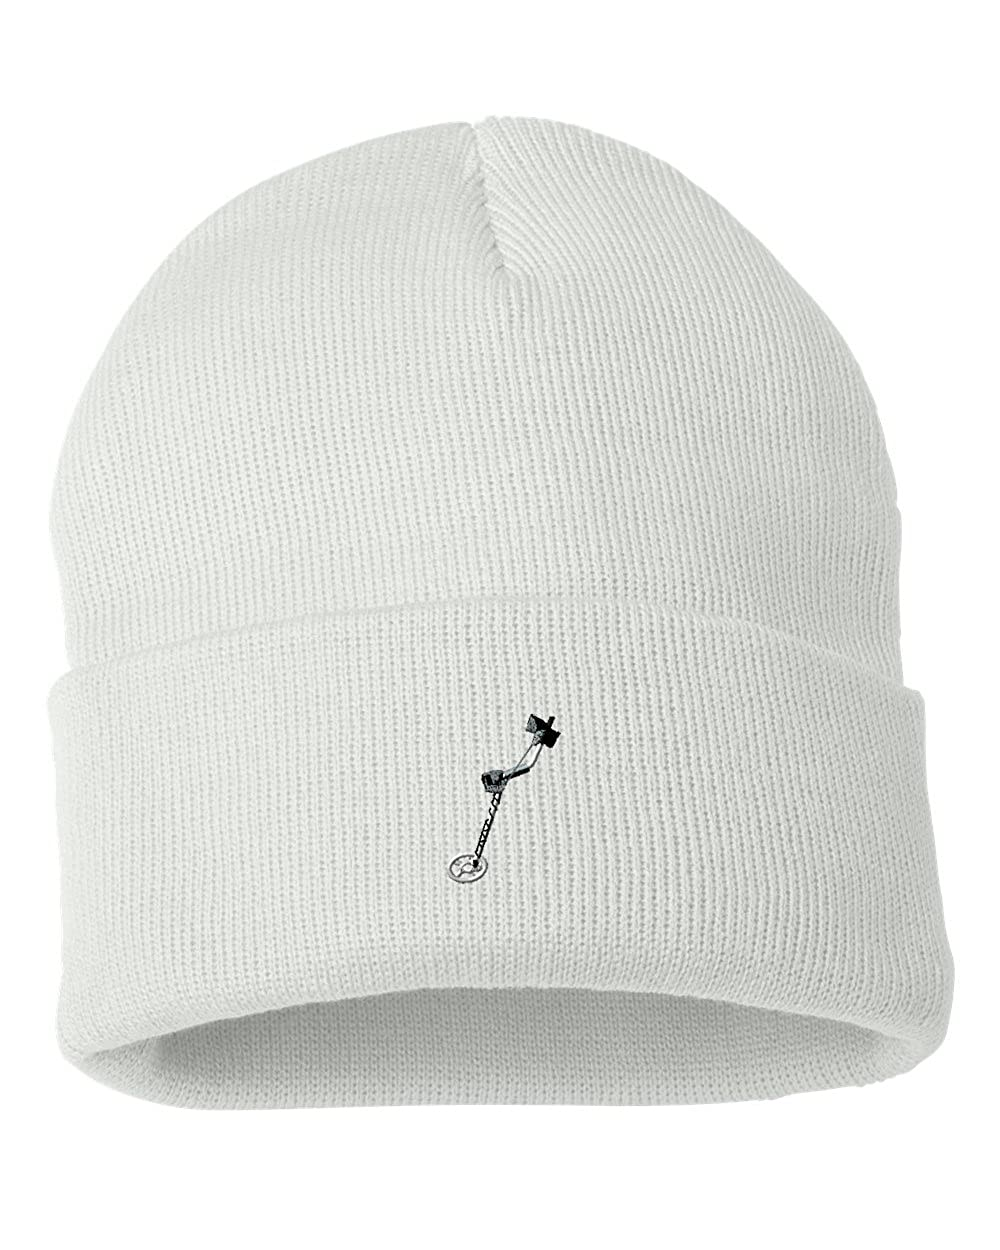 Metal Detector Custom Personalized Embroidery Embroidered Beanie